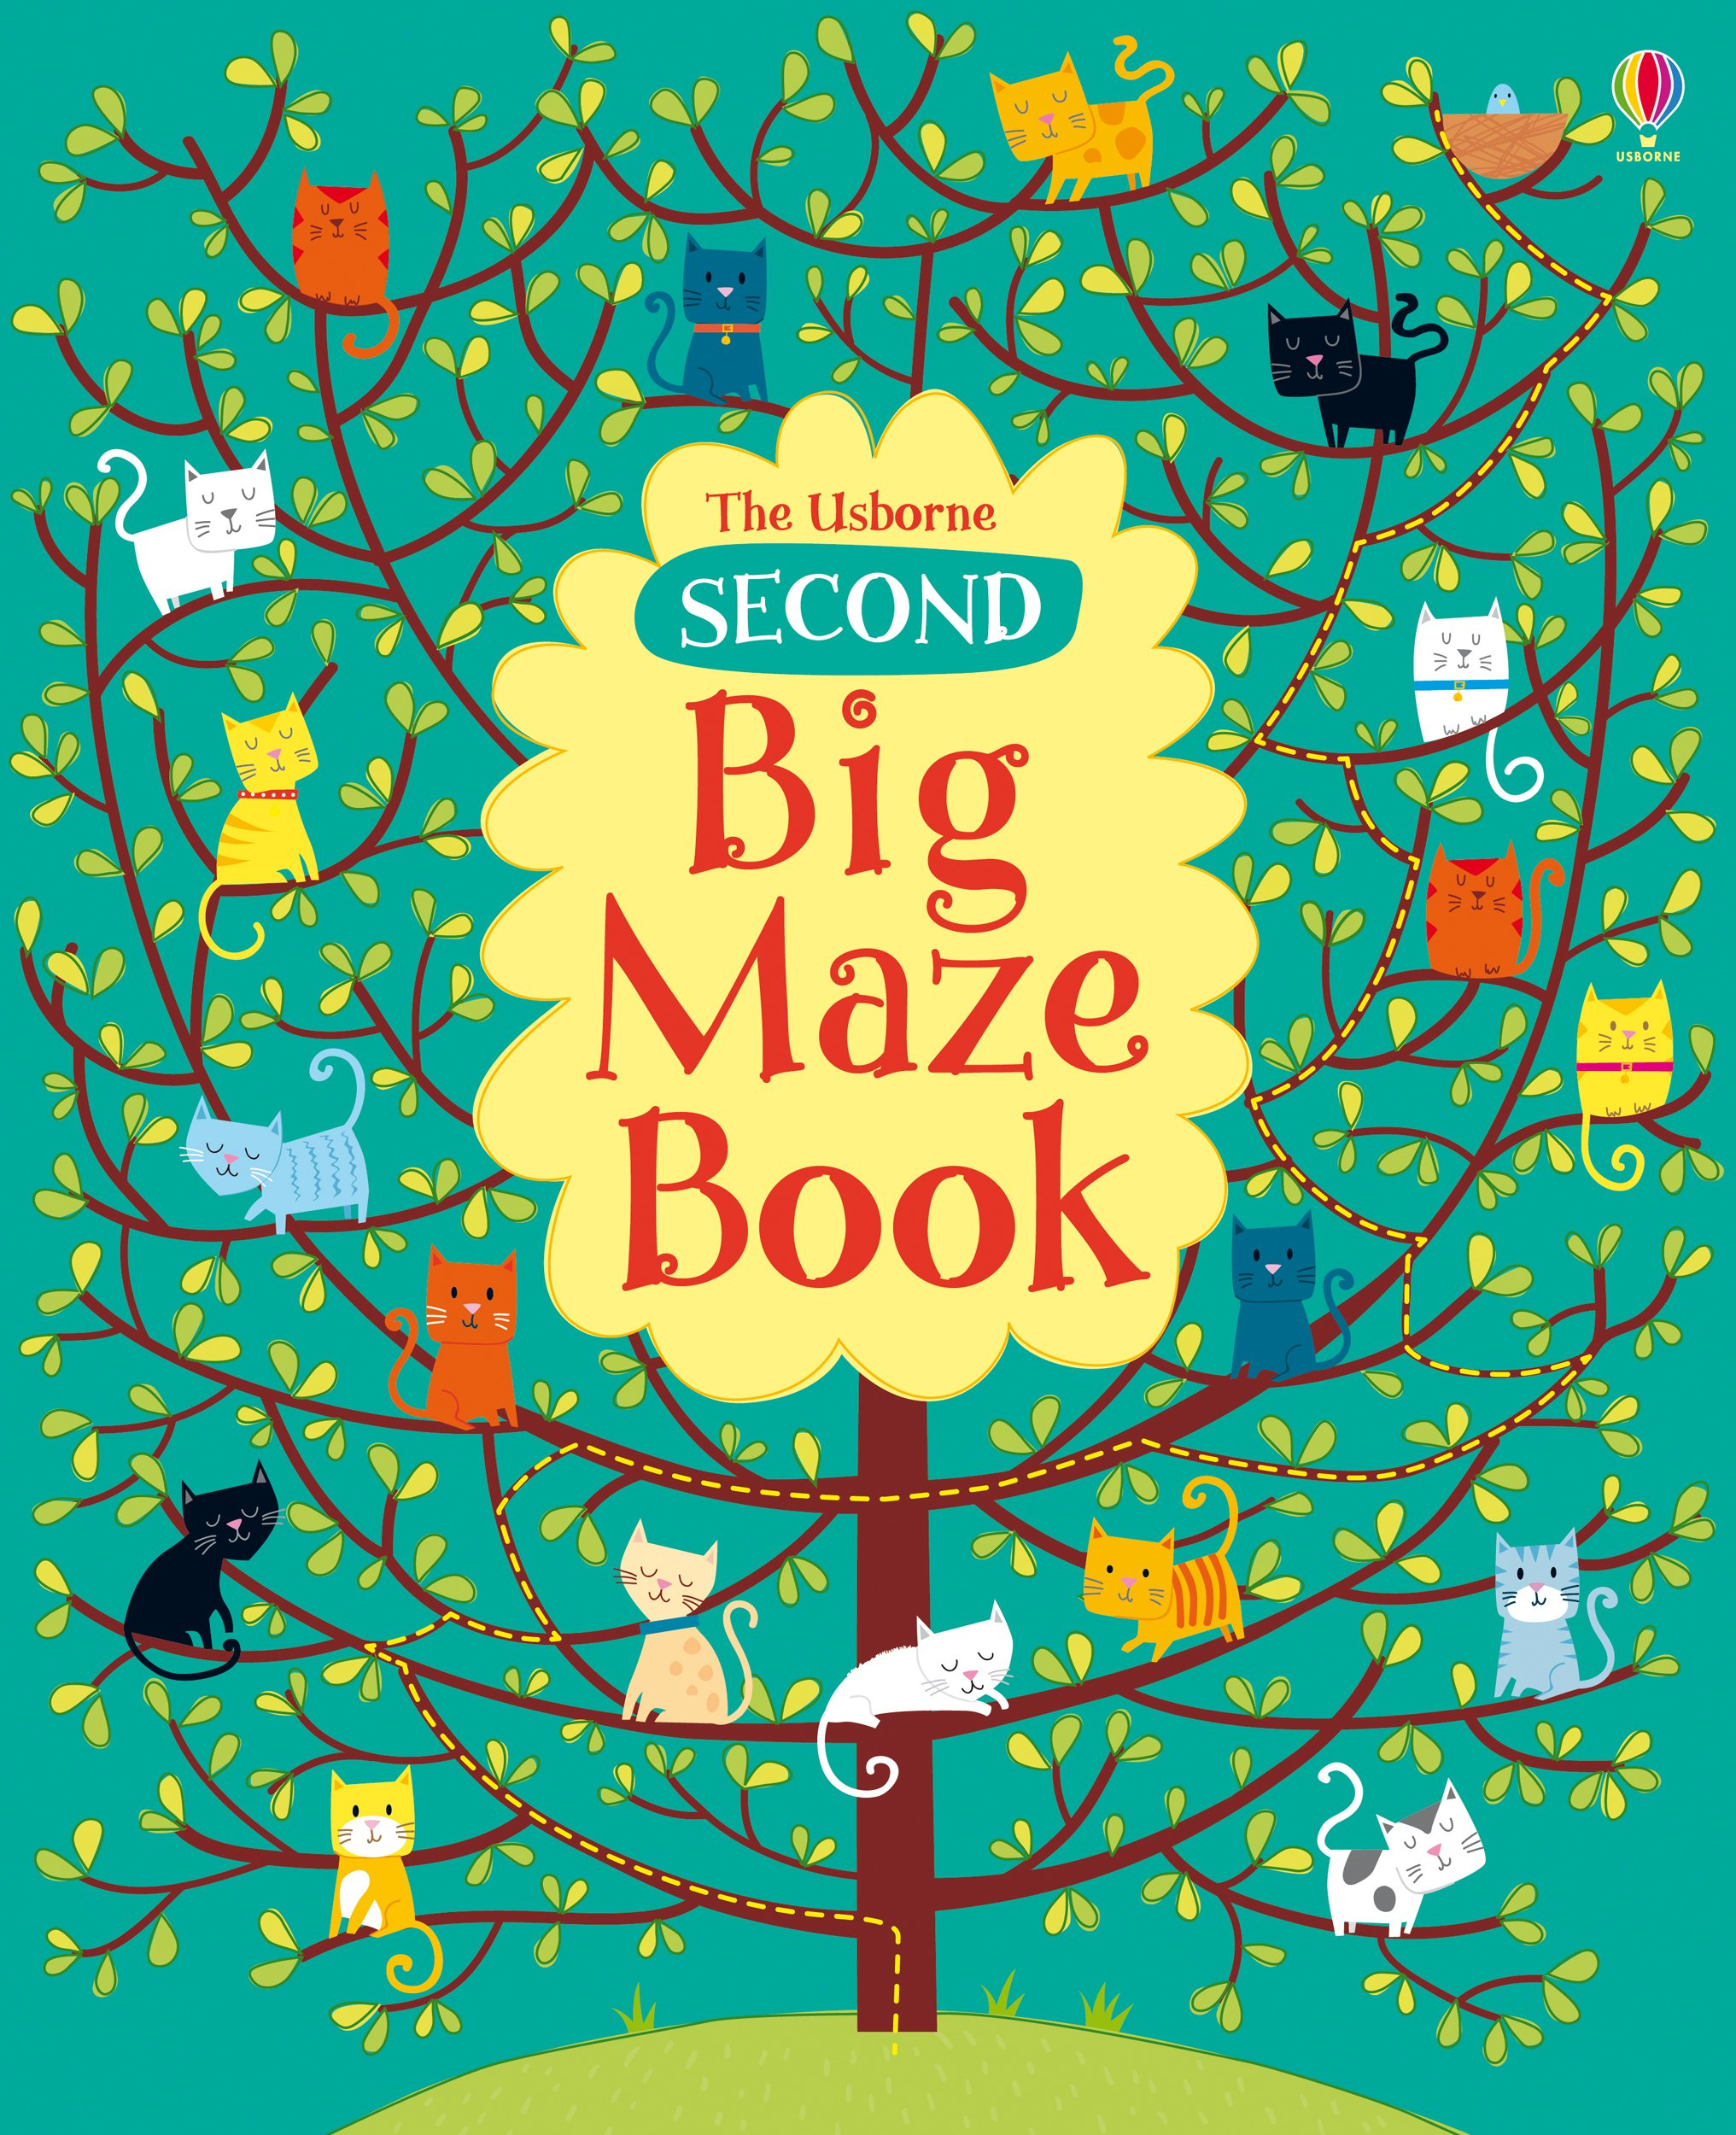 The Big Maze Book I Top 20 Activity Books for Children I Dublin Family Programme I What to do with kids in Dublin I Discover Dublin's Playful Side